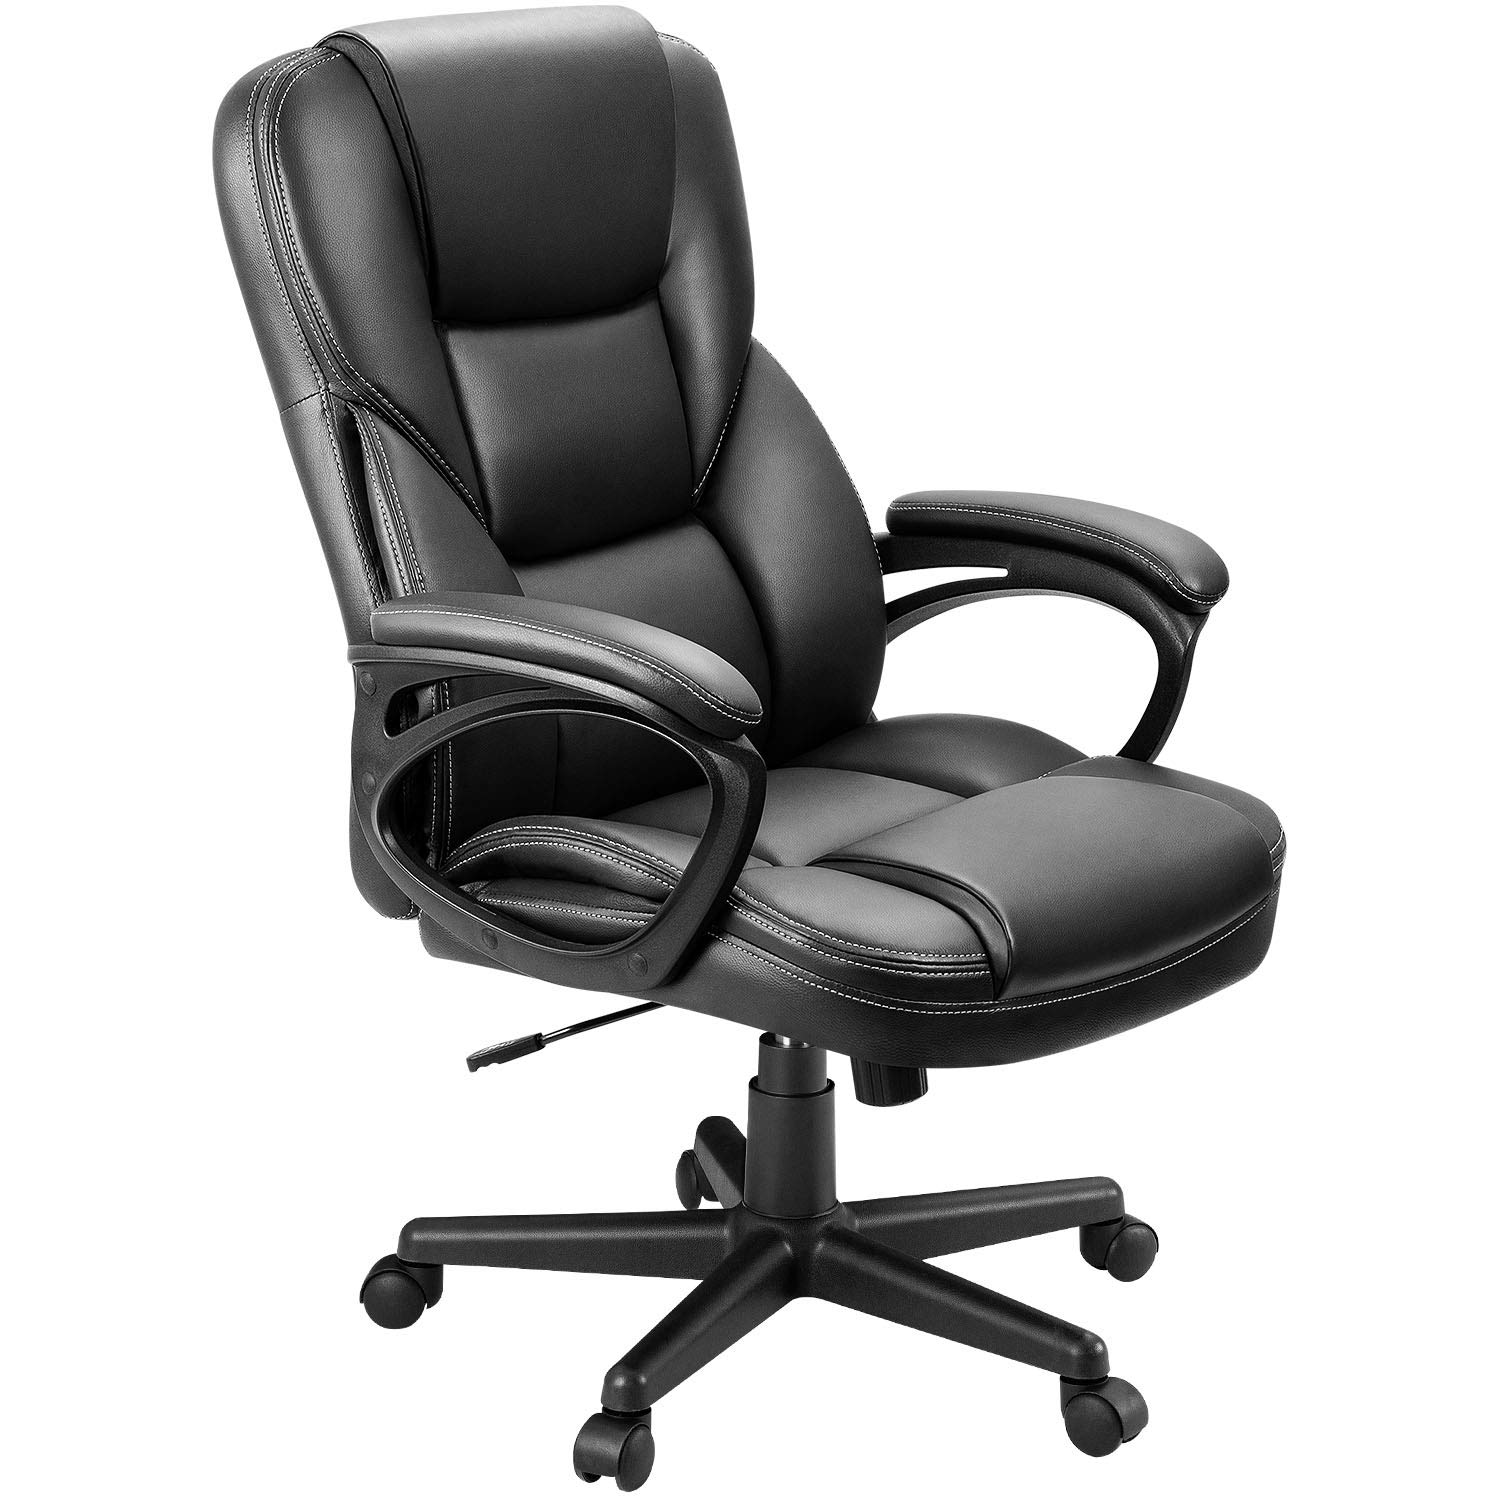 Furmax Office Exectuive Chair High Back Adjustable Managerial Home Desk Chair,Swivel Computer PU Leather Chair with Lumbar Support (Black) by Furmax